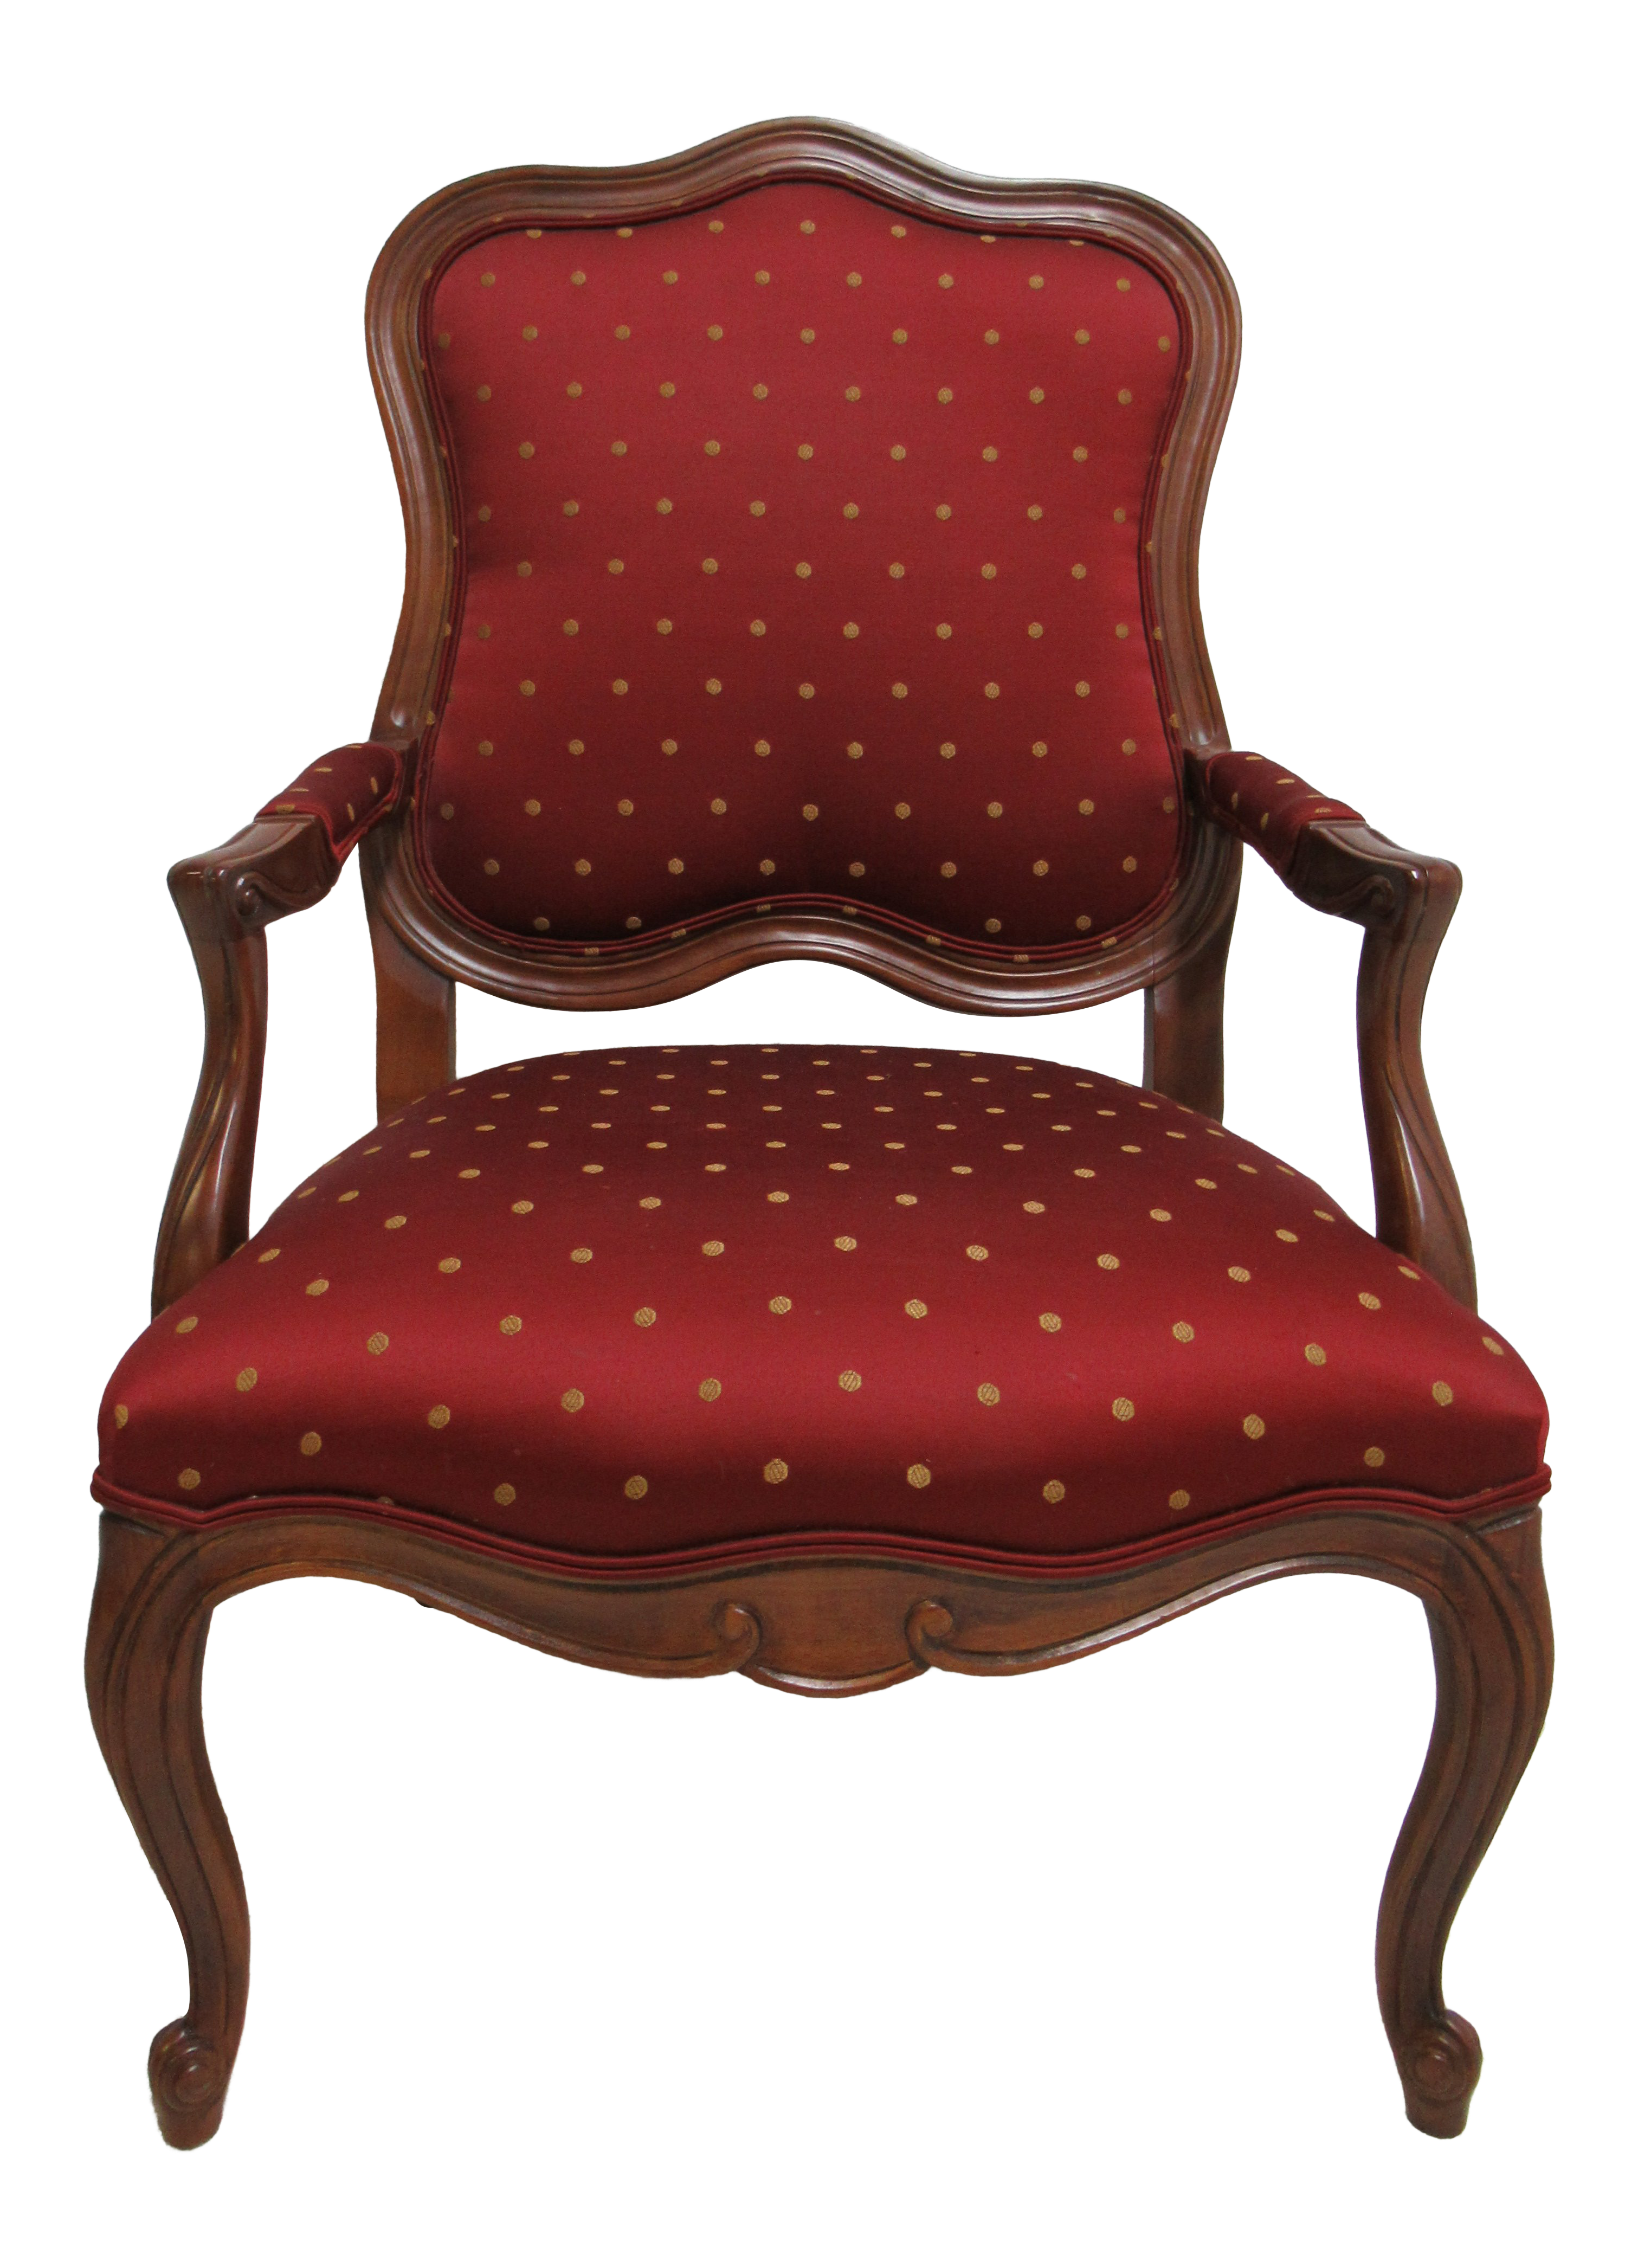 Ethan Allen Country French Lounge Living Room Chair